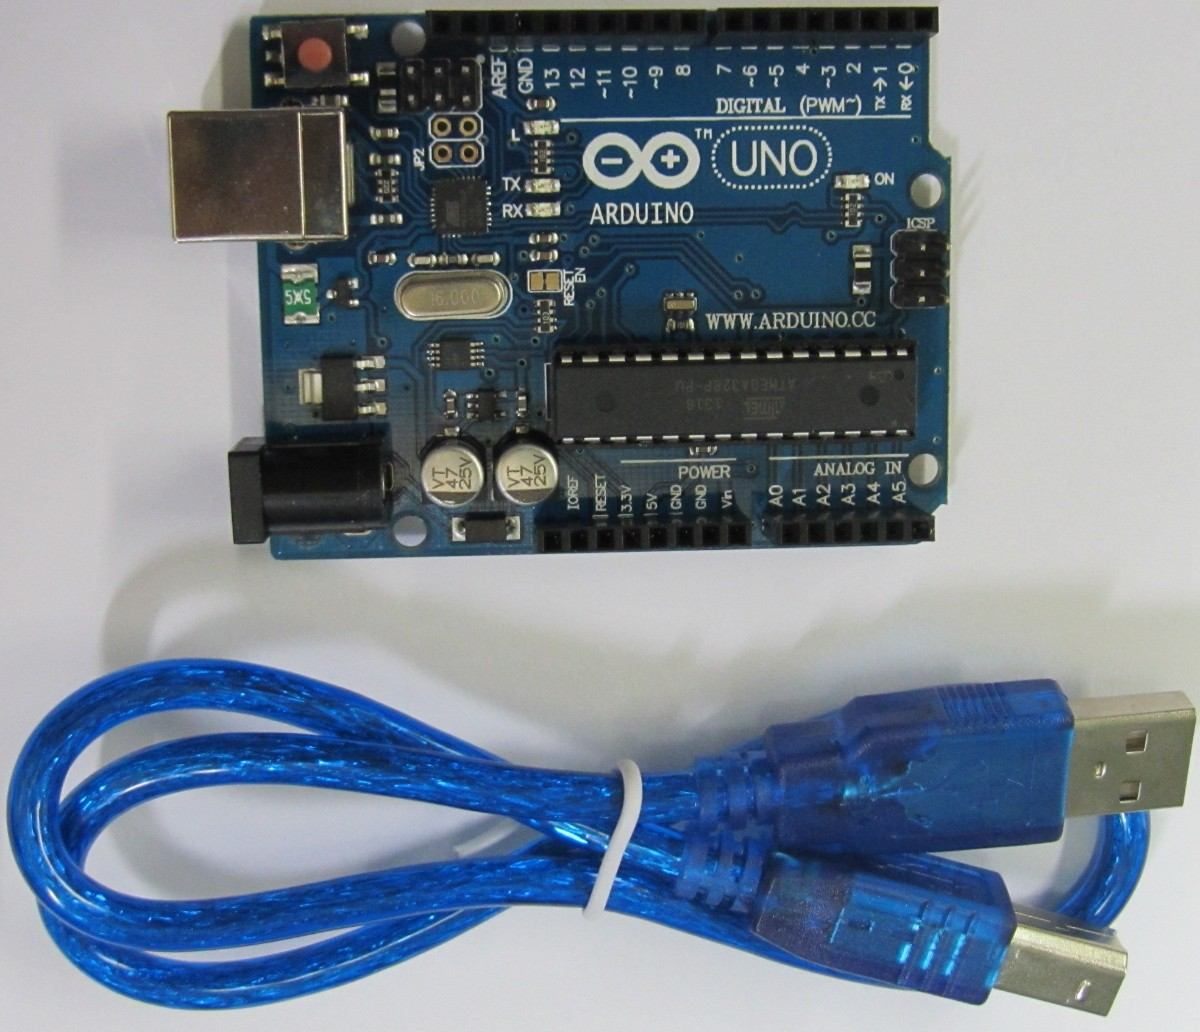 Arduino Uno R3 Hub360 Atmega328p 16u2 Dip Usb Cable Programming Previous